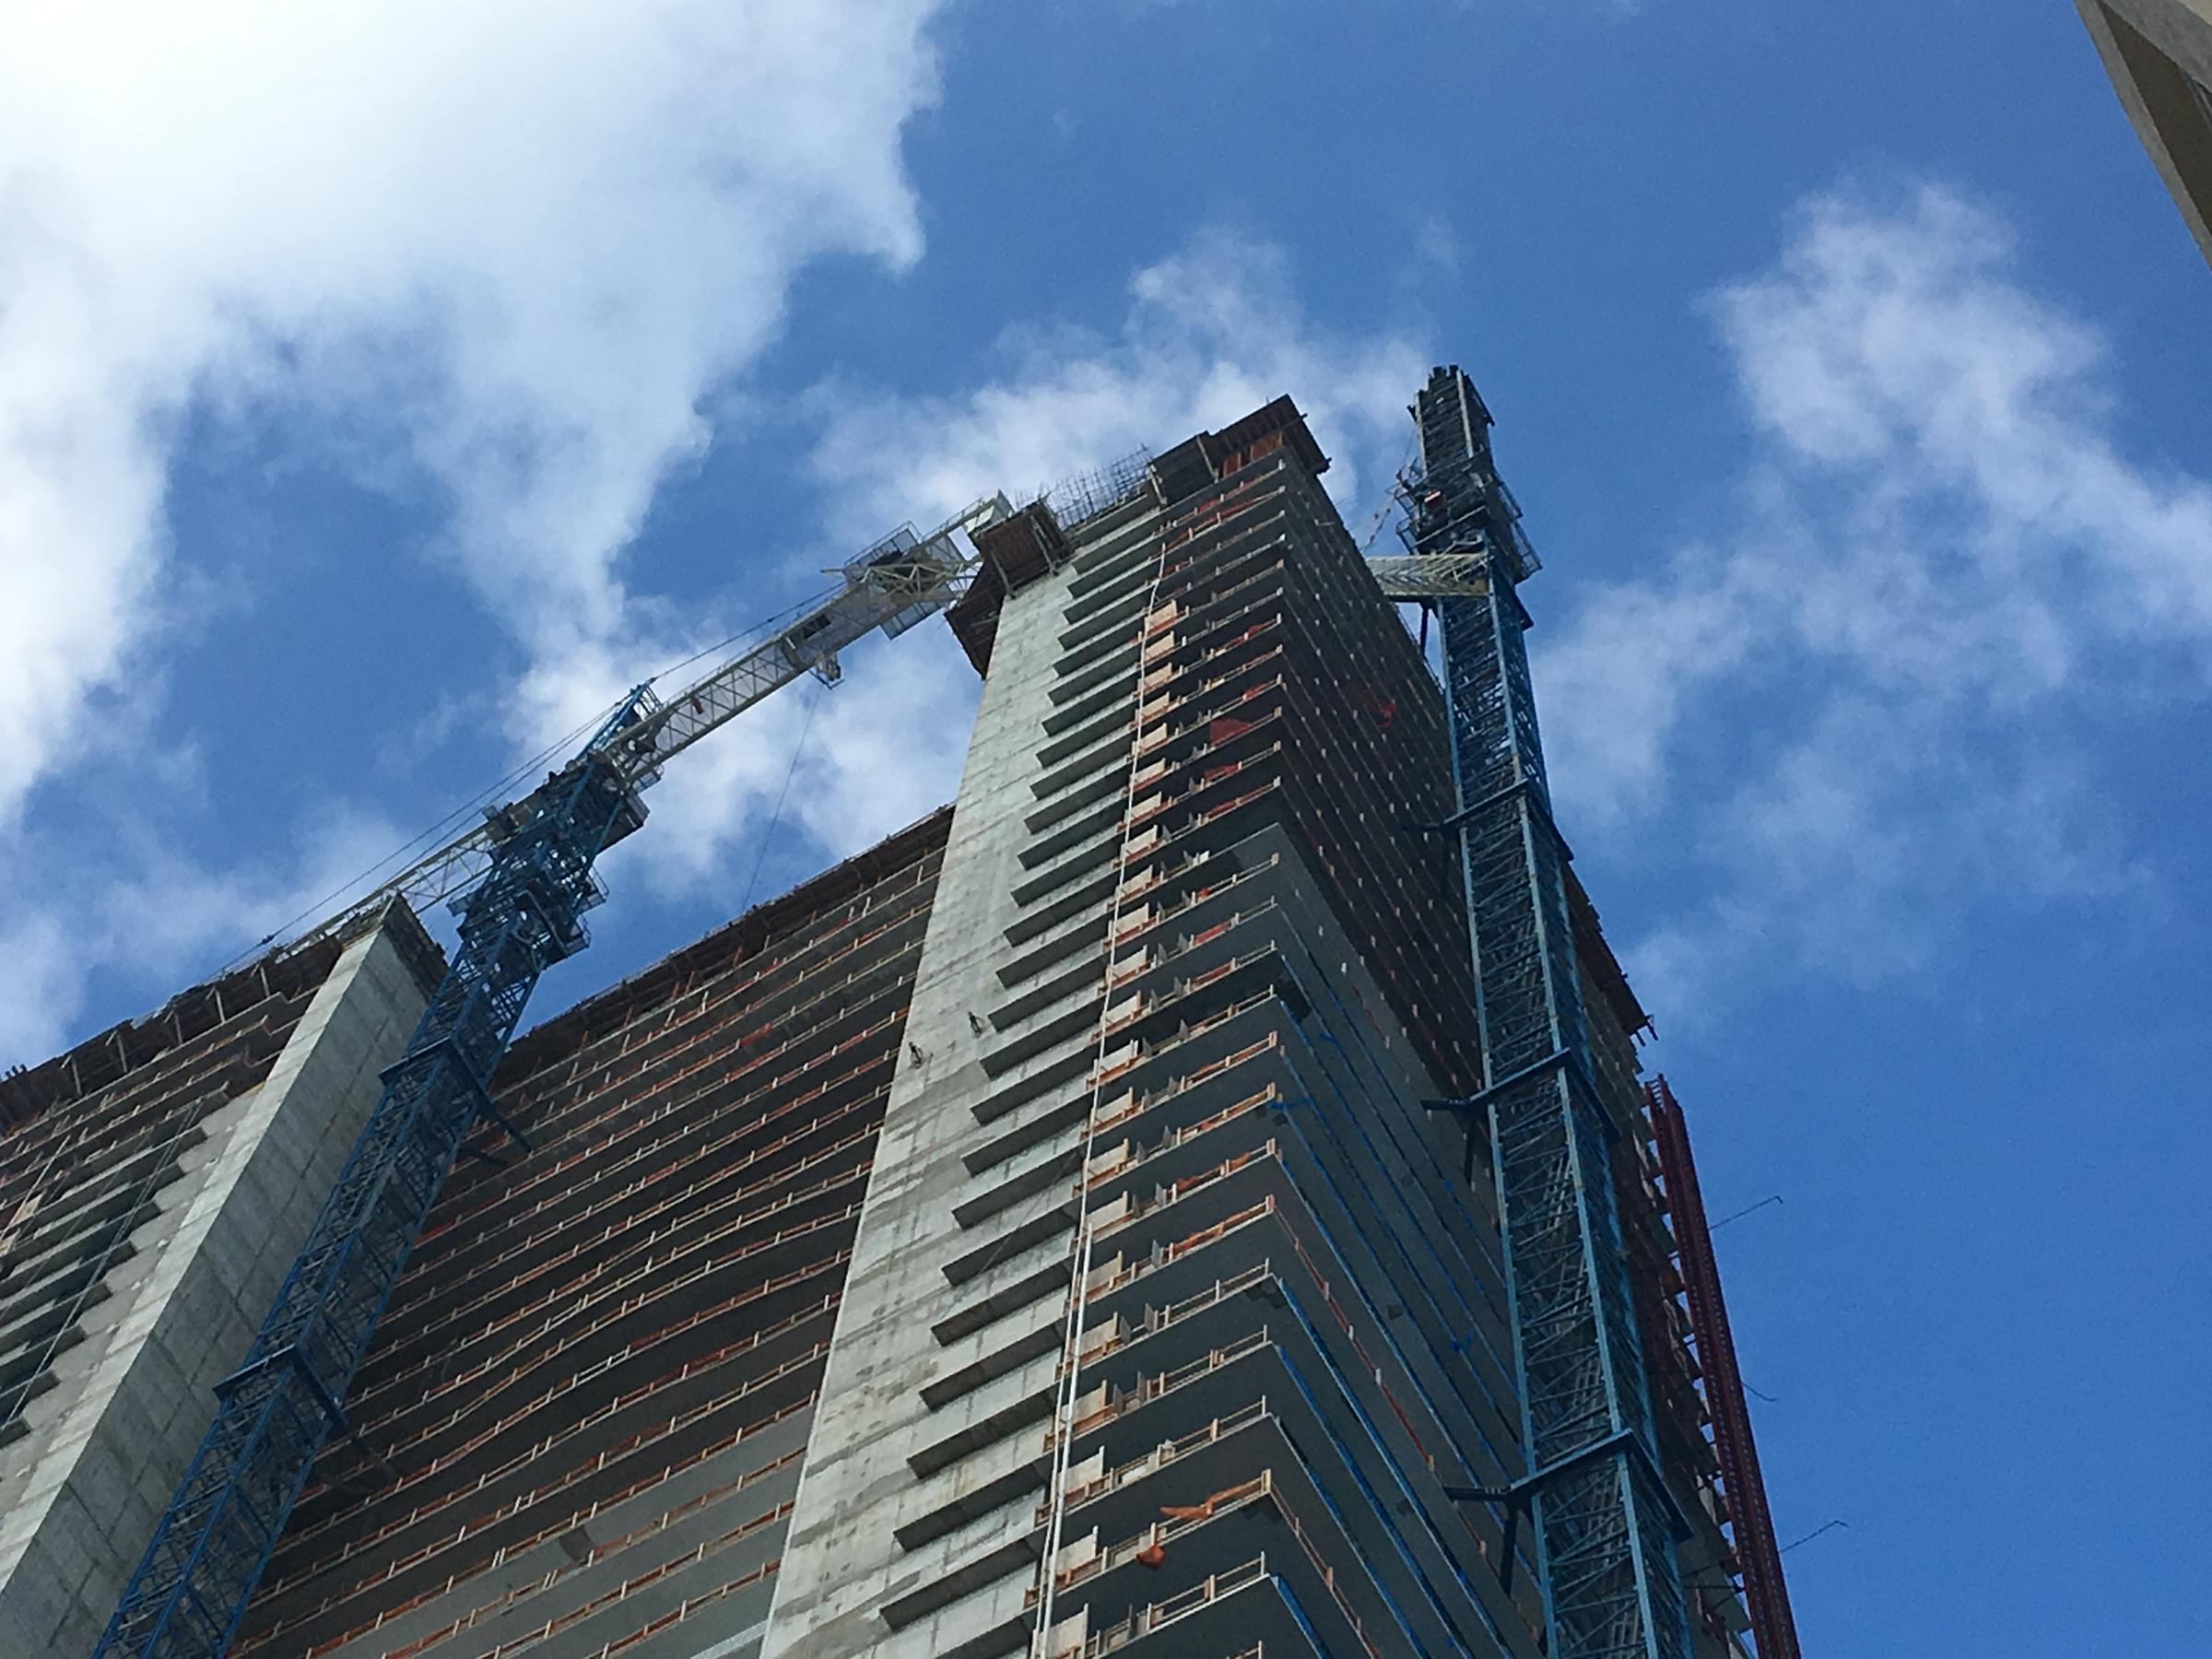 Miami Residents Who Live Near Crane Broken By Hurricane Irma Told To